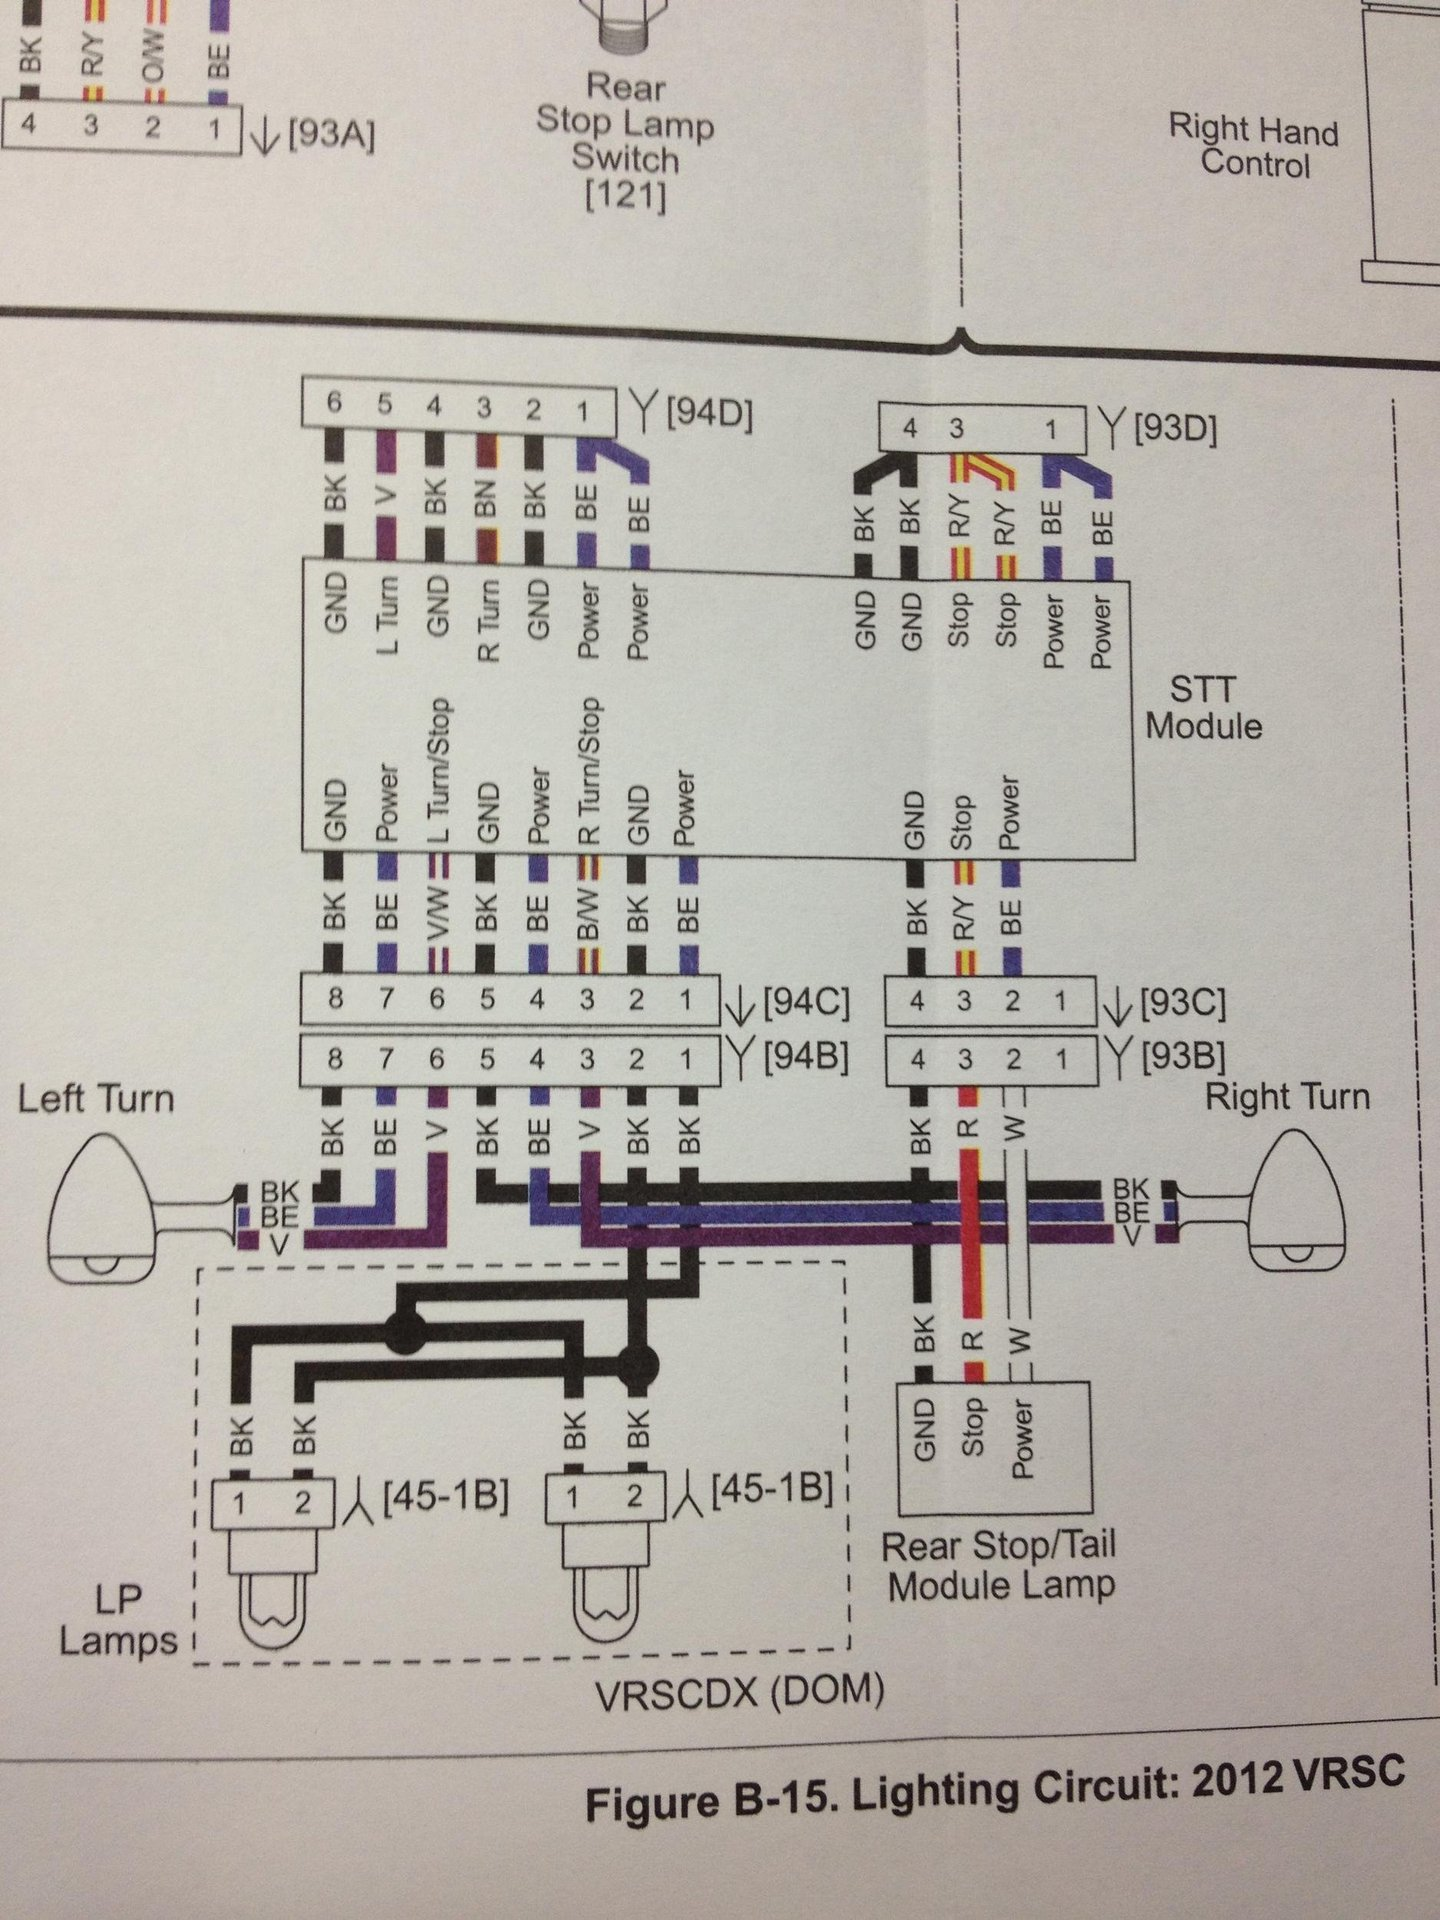 Turn Signals Rewire | Harley Davidson V-Rod Forum | Turn Signal Wire Diagram 6 |  | V-Rod Forum